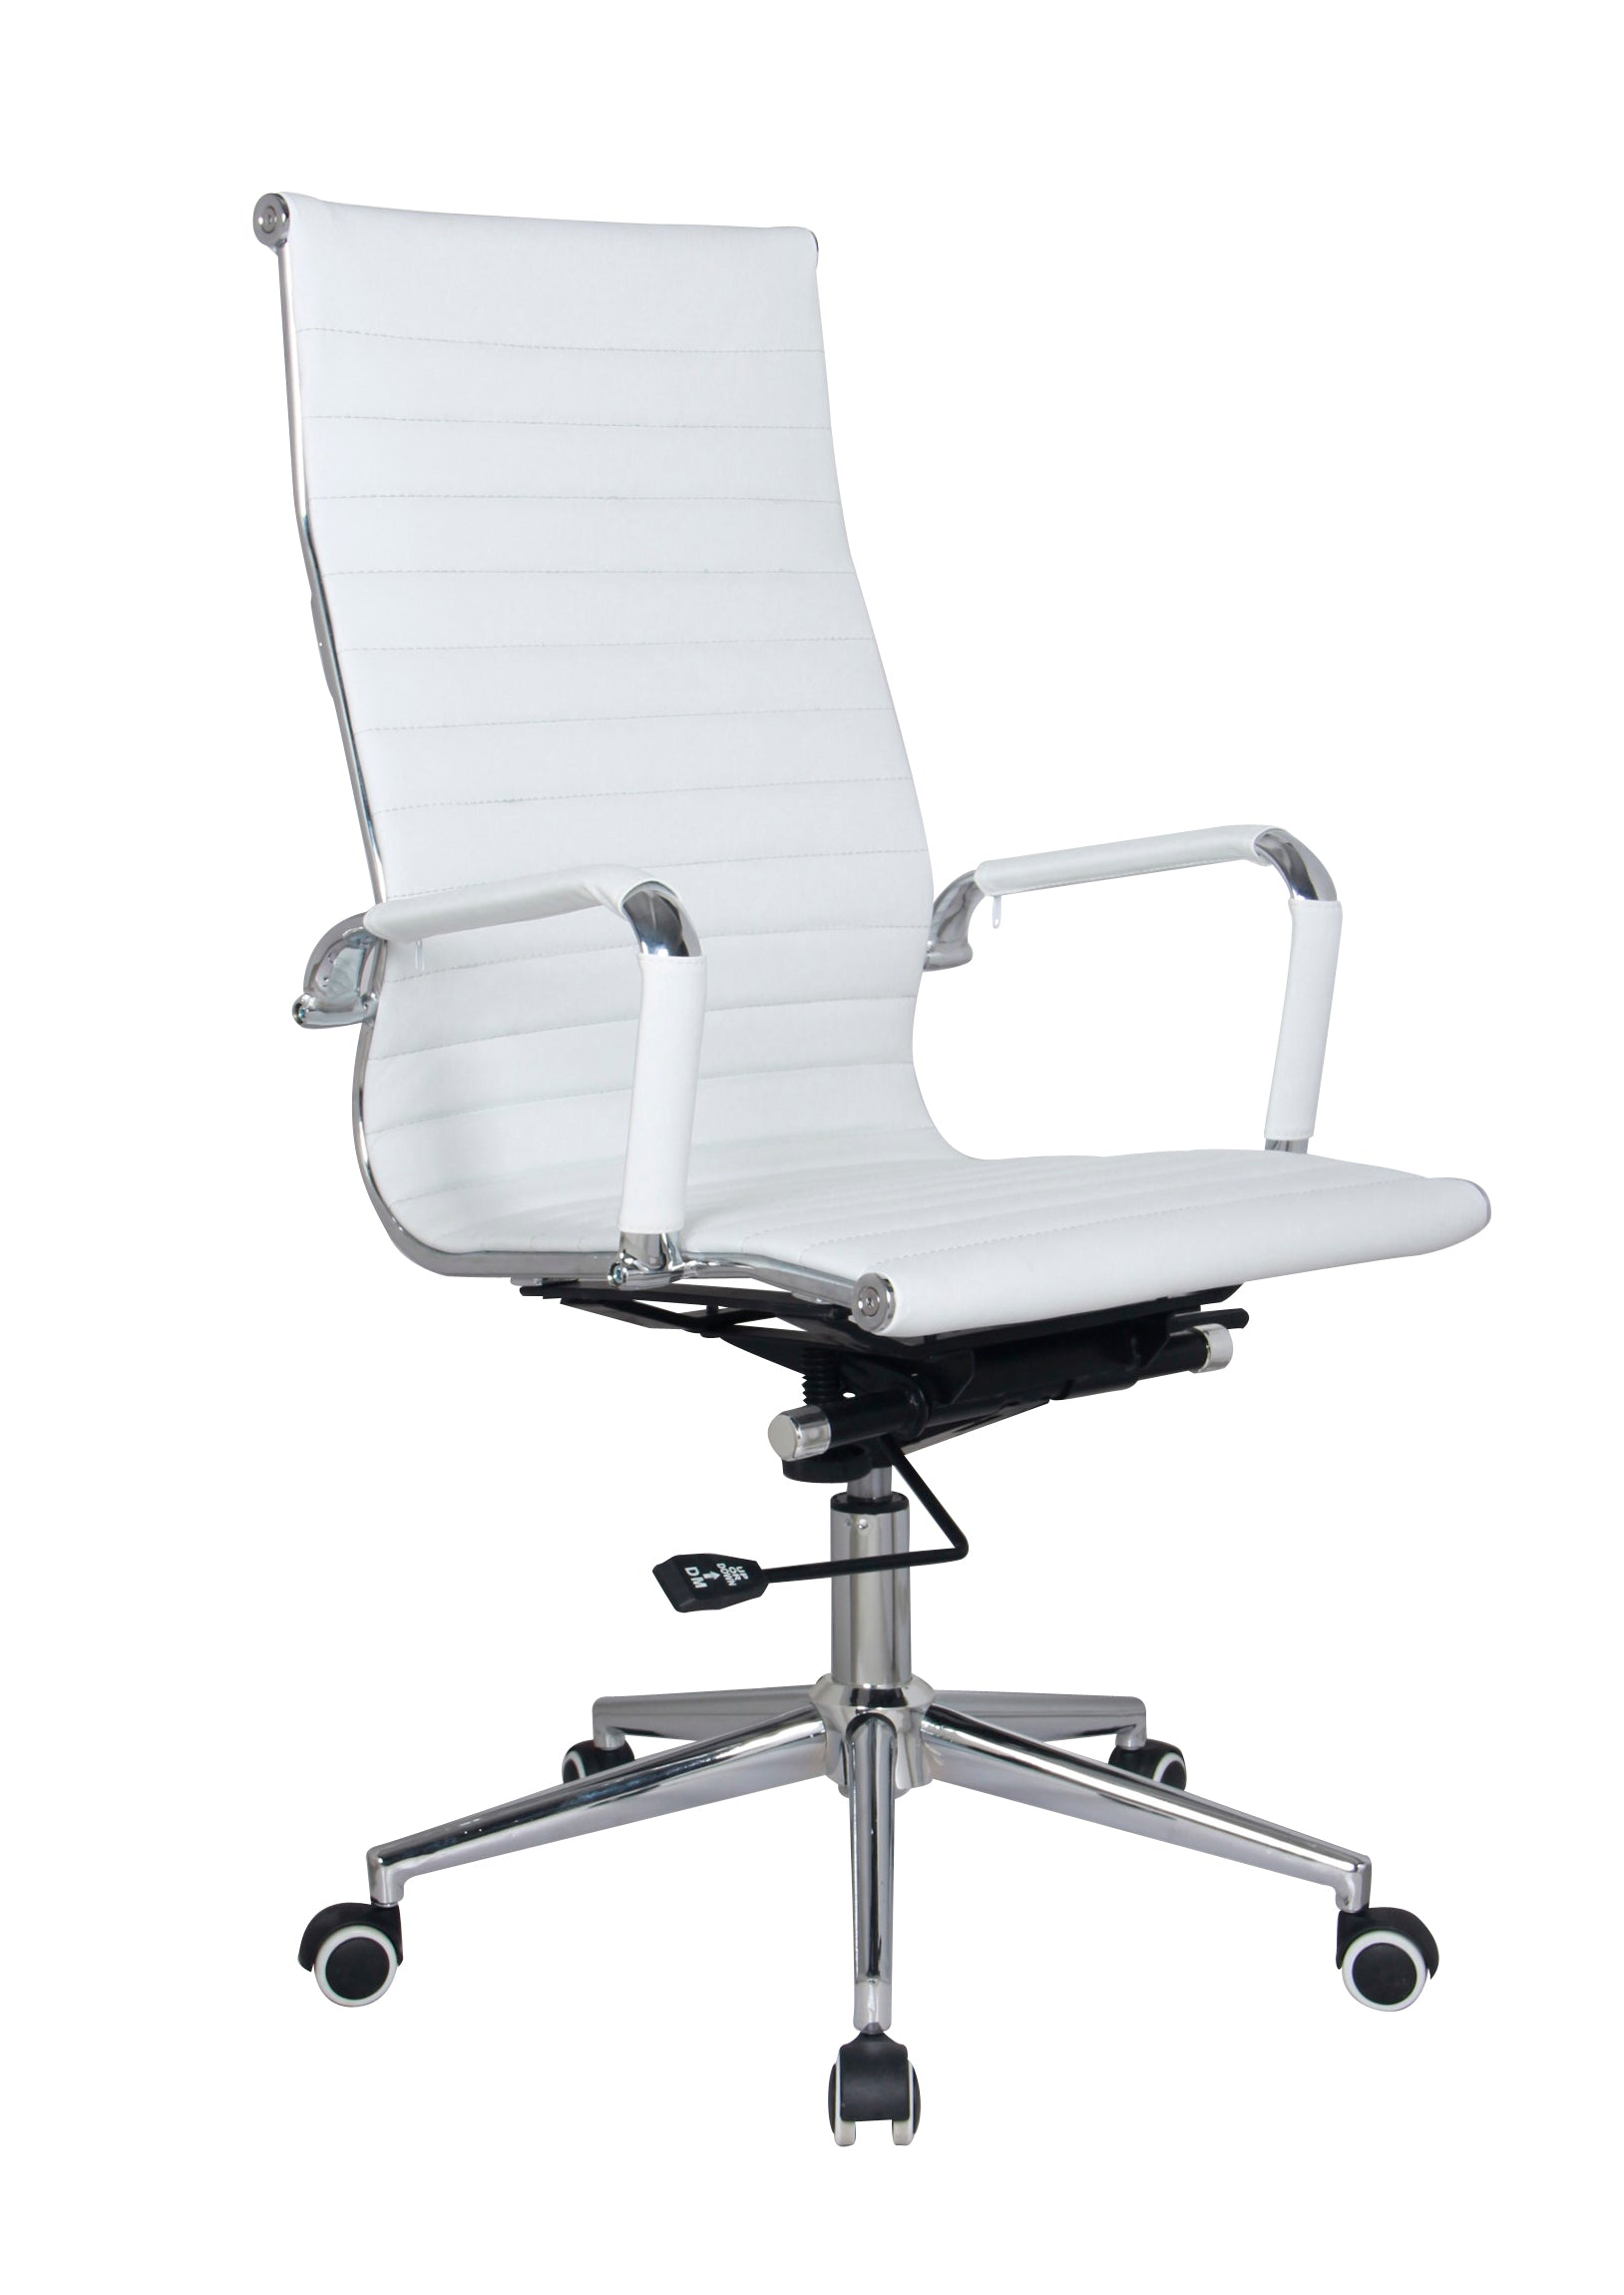 Ribbed high back office chair white Pleather Sold in a PACK of